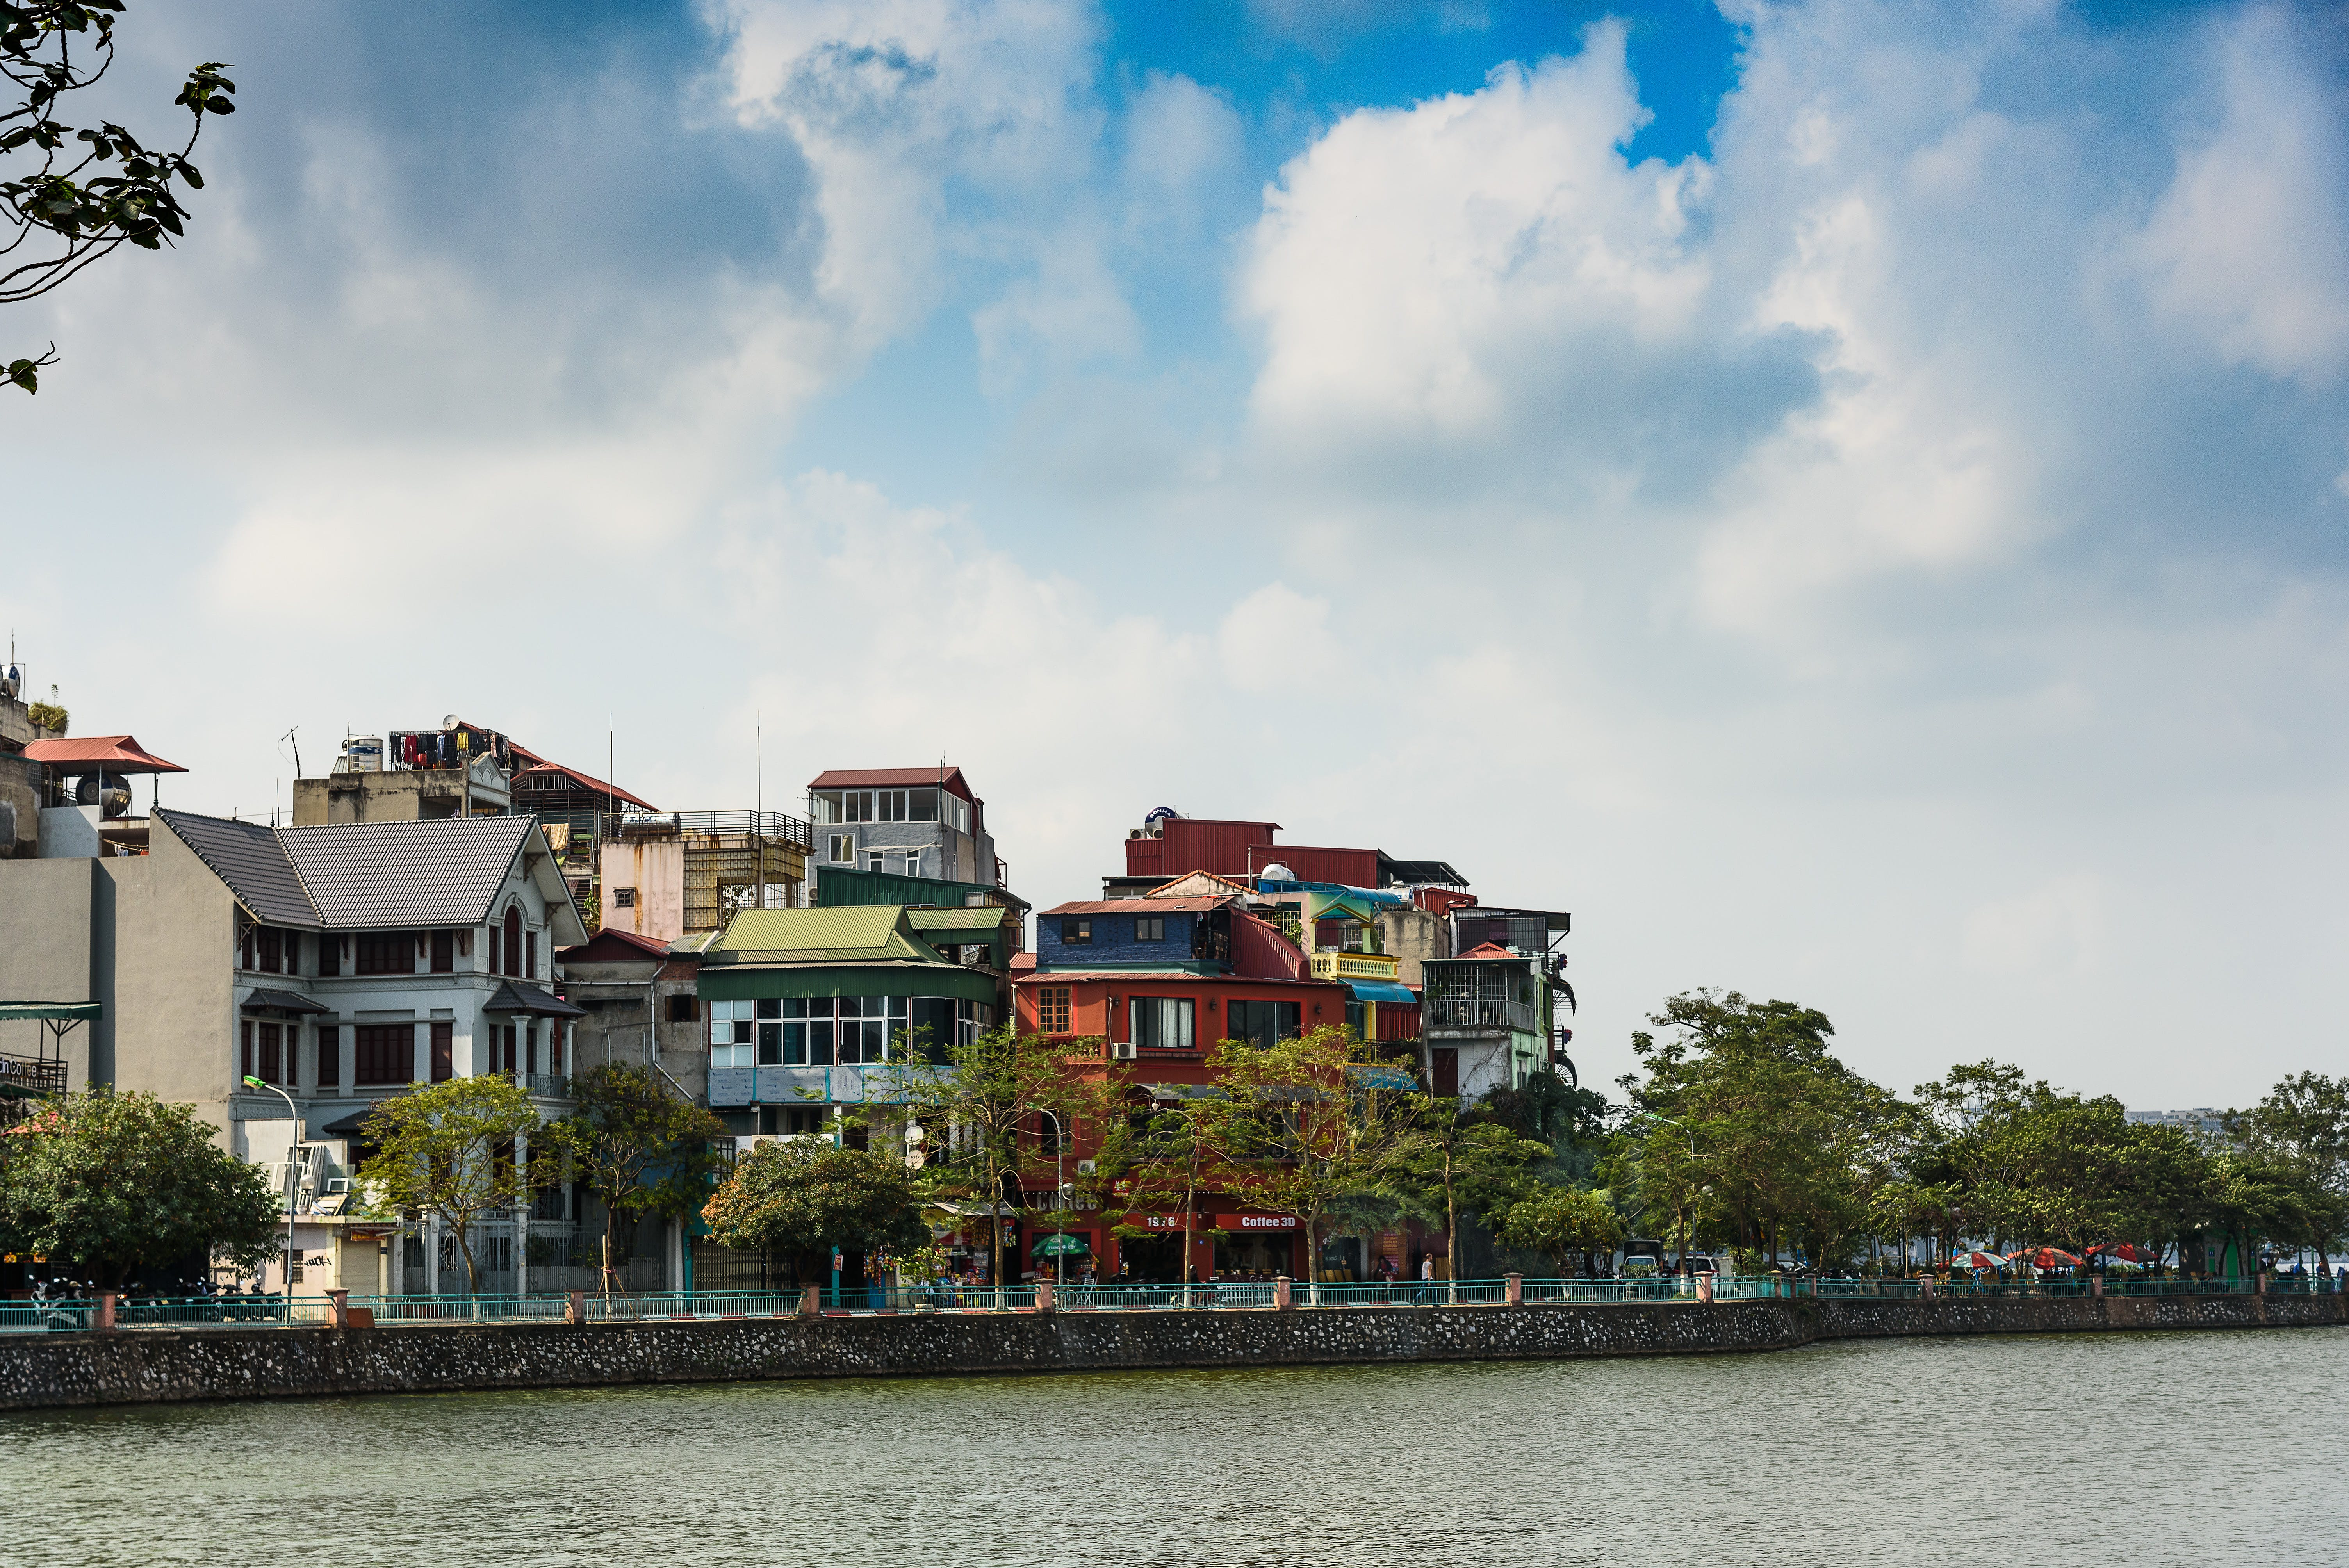 Assorted-color Buildings Near Water and Trees